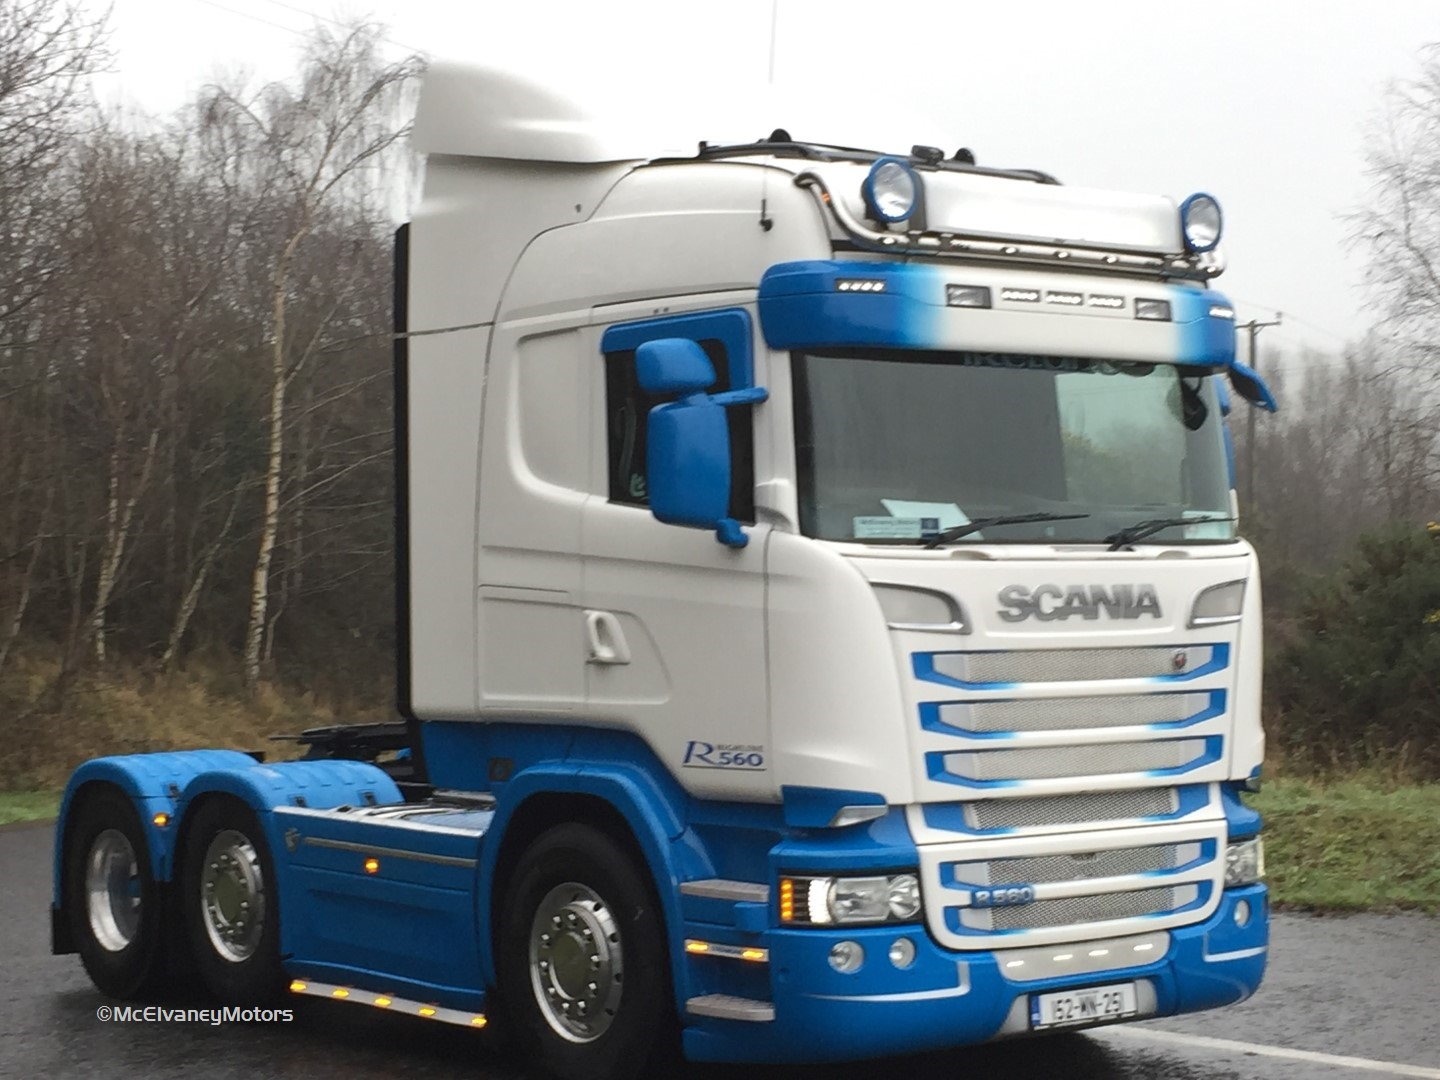 Stunning Scania R560 for Michael Keating!